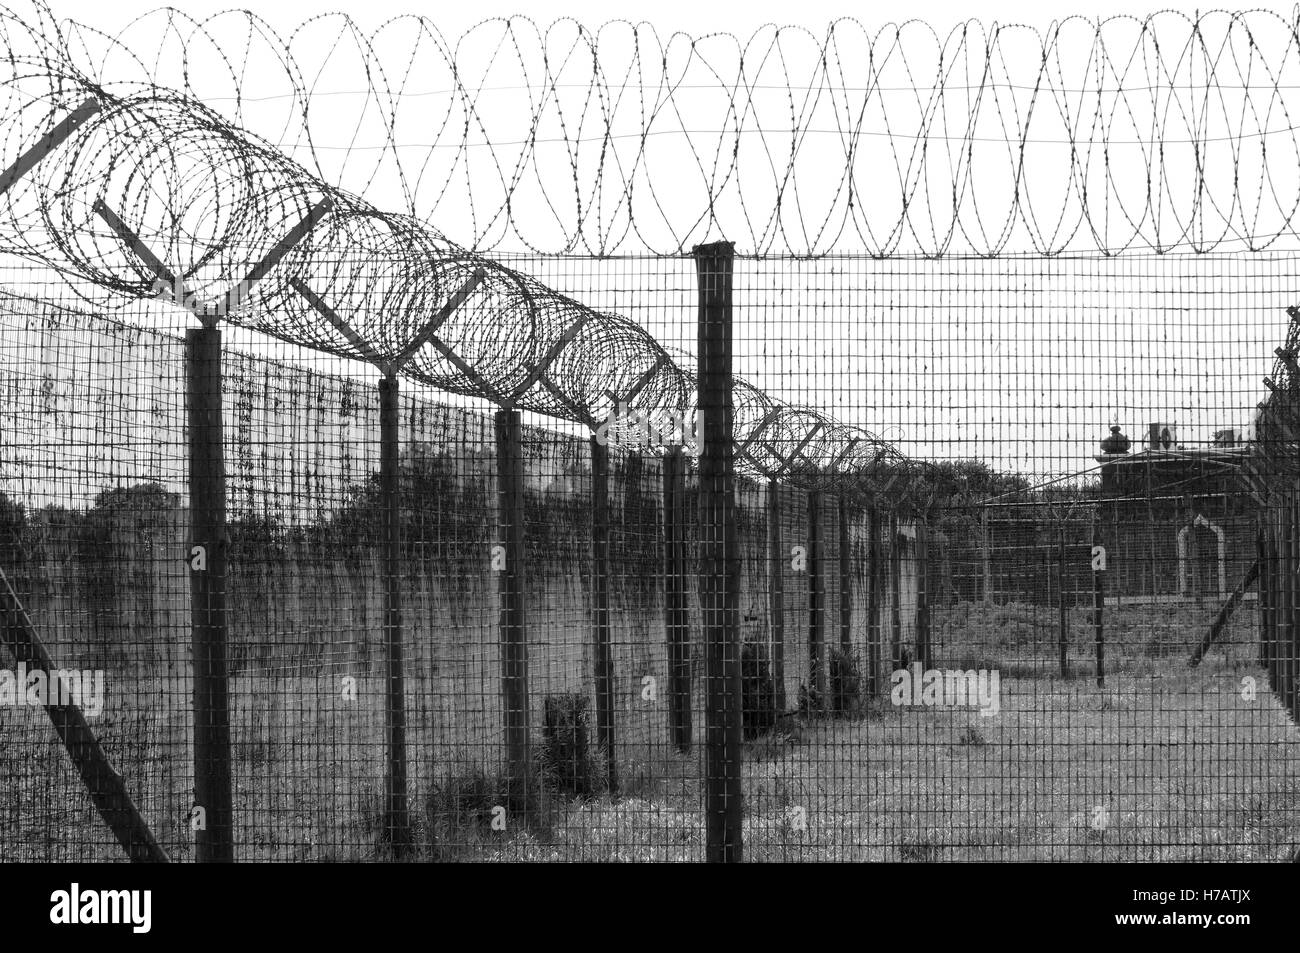 Fencing Wire Black and White Stock Photos & Images - Alamy